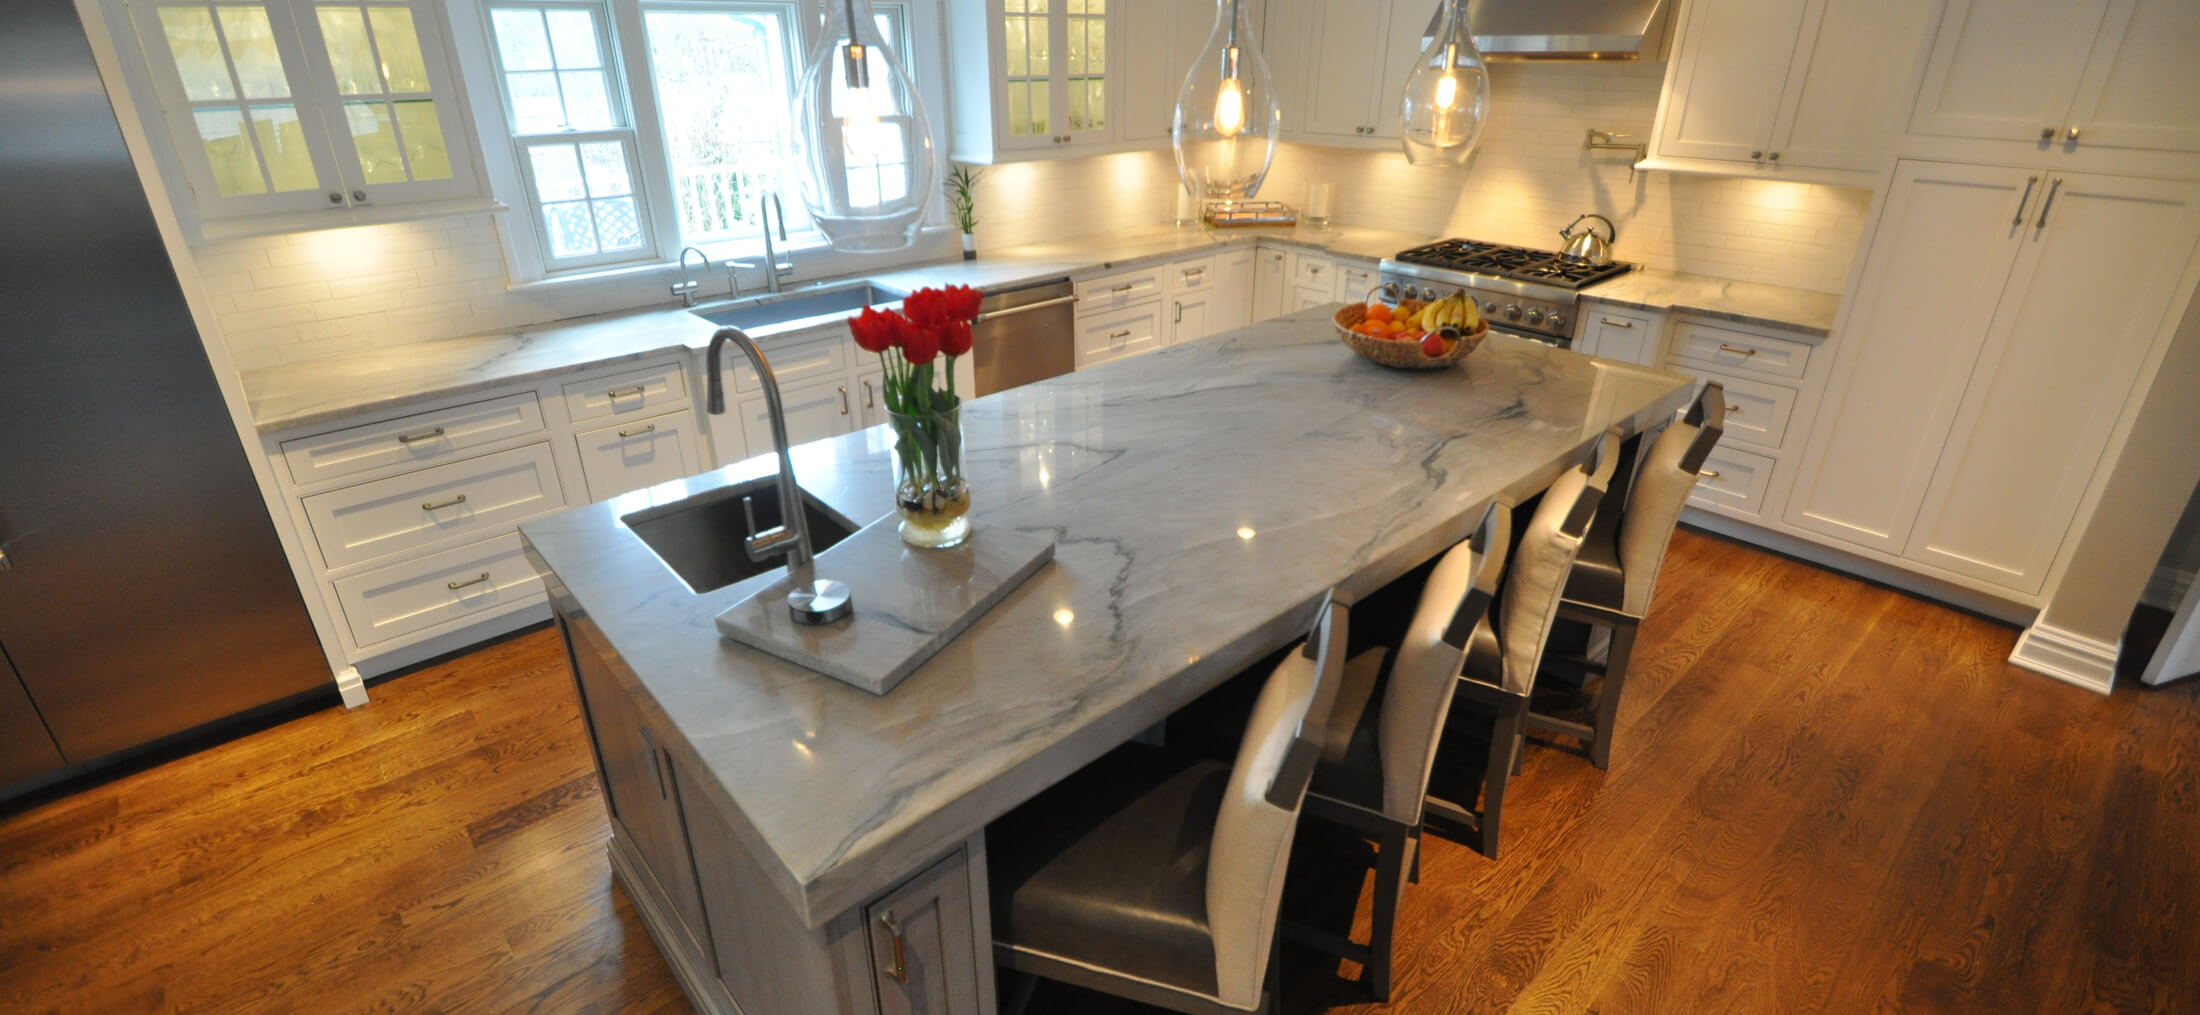 Long Island Home Remodeling Company   Center Island Contracting